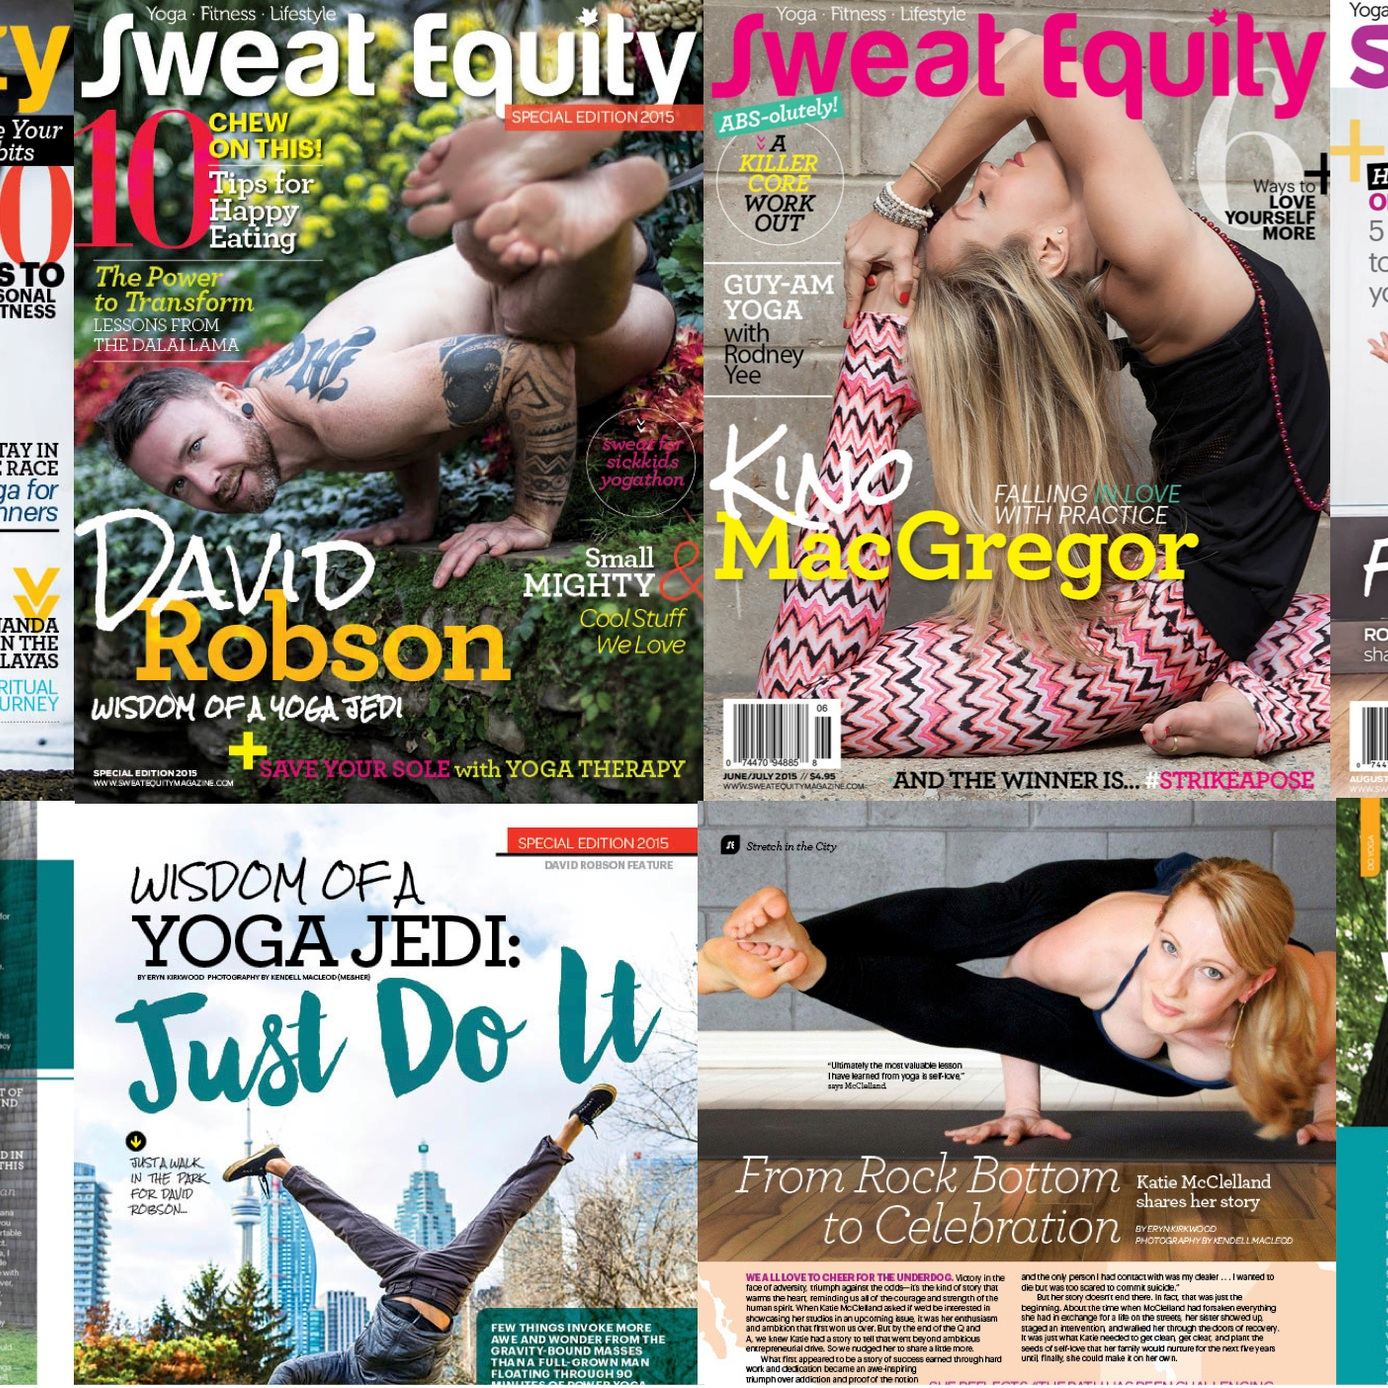 PUBLICATION - We have been published in a few Canadian magazines and have gotten to photograph some amazing people